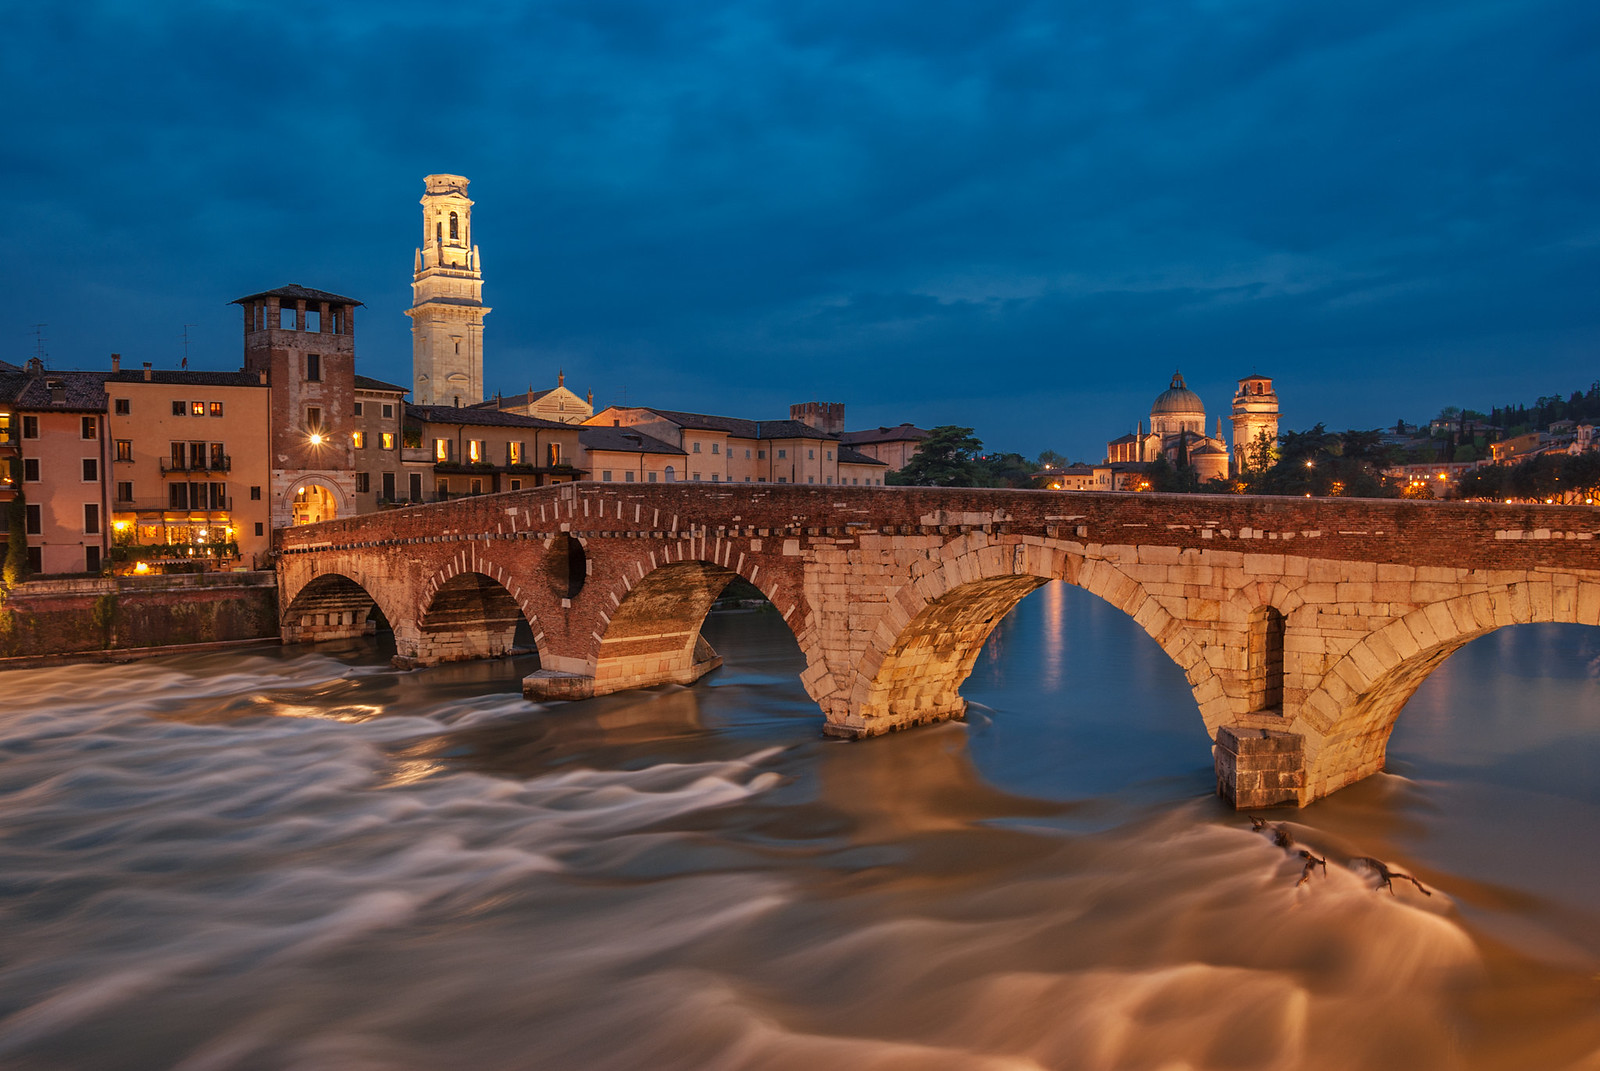 Ponte Pietra in Verona - 5 Great Things to Do and See in Verona, Italy